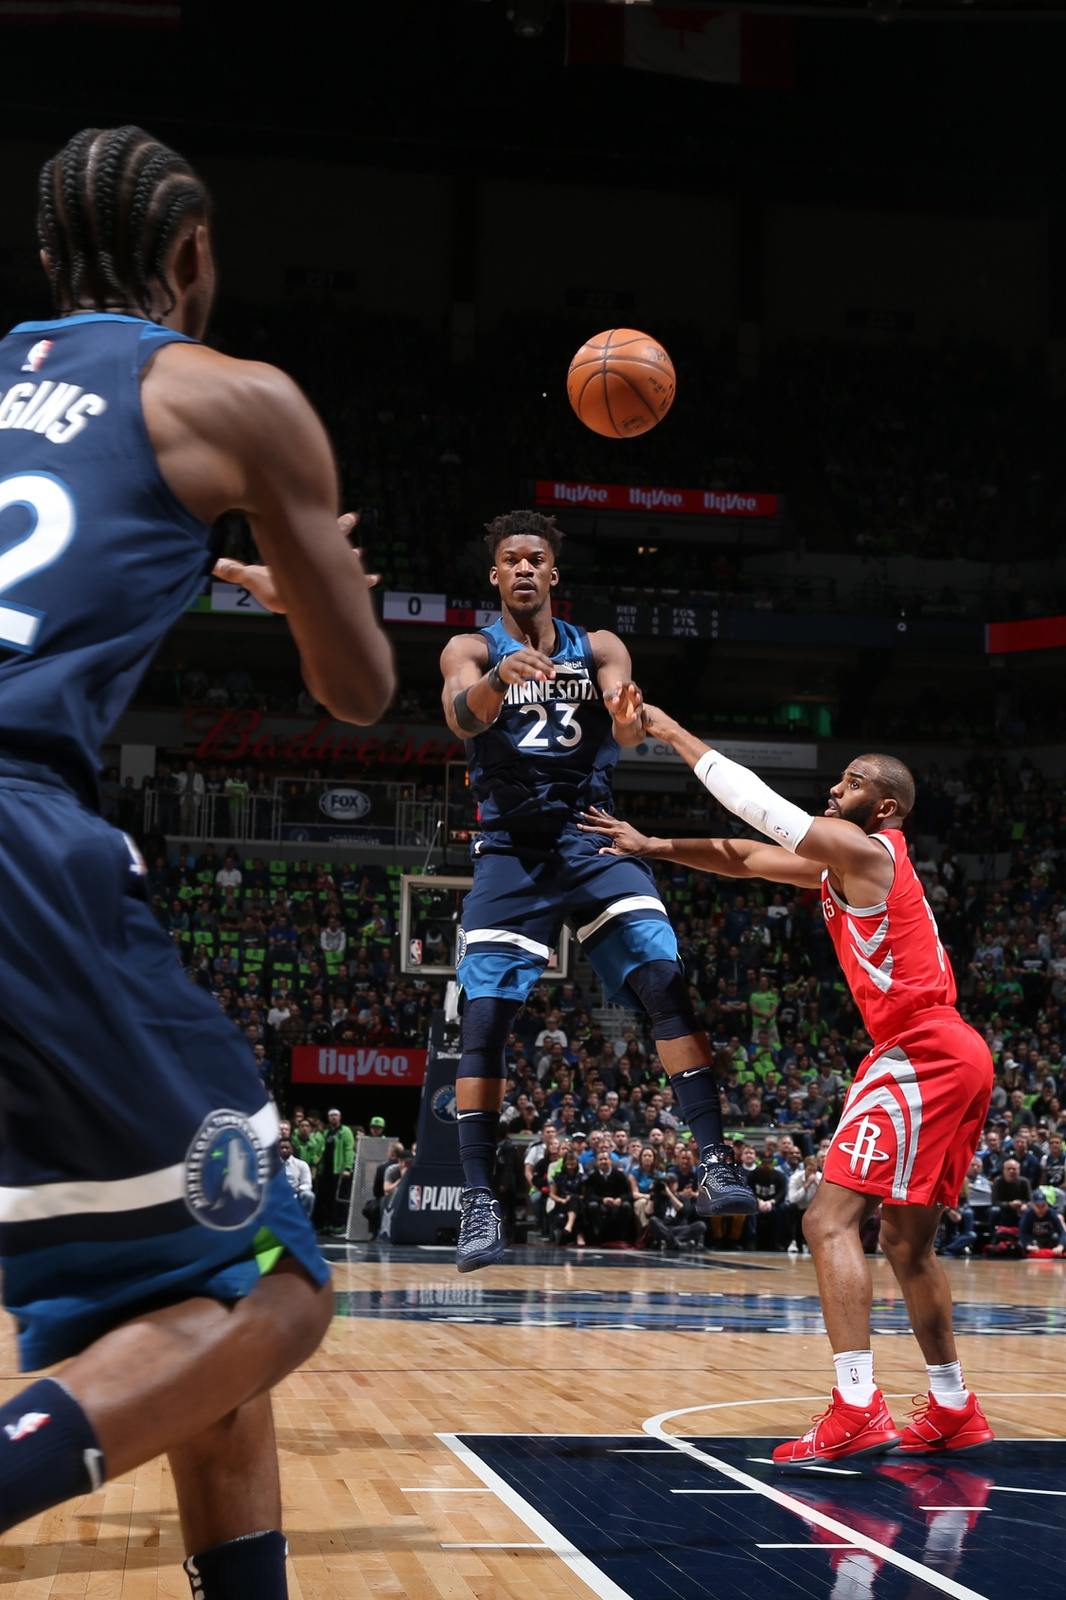 Jimmy Butler passes the ball